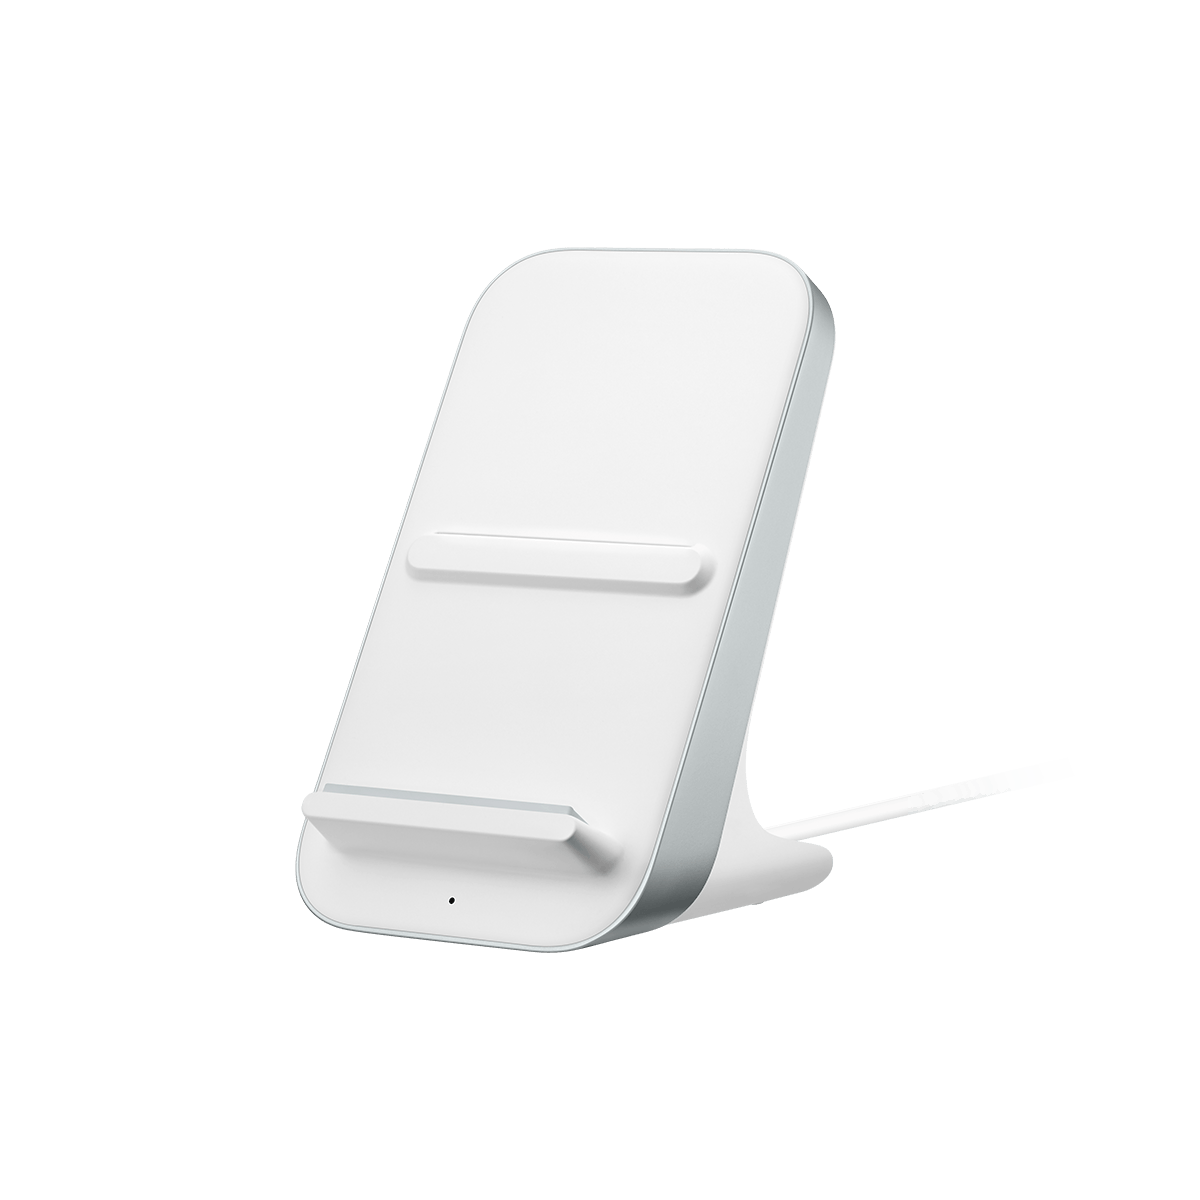 warp charge 30 wireless charger